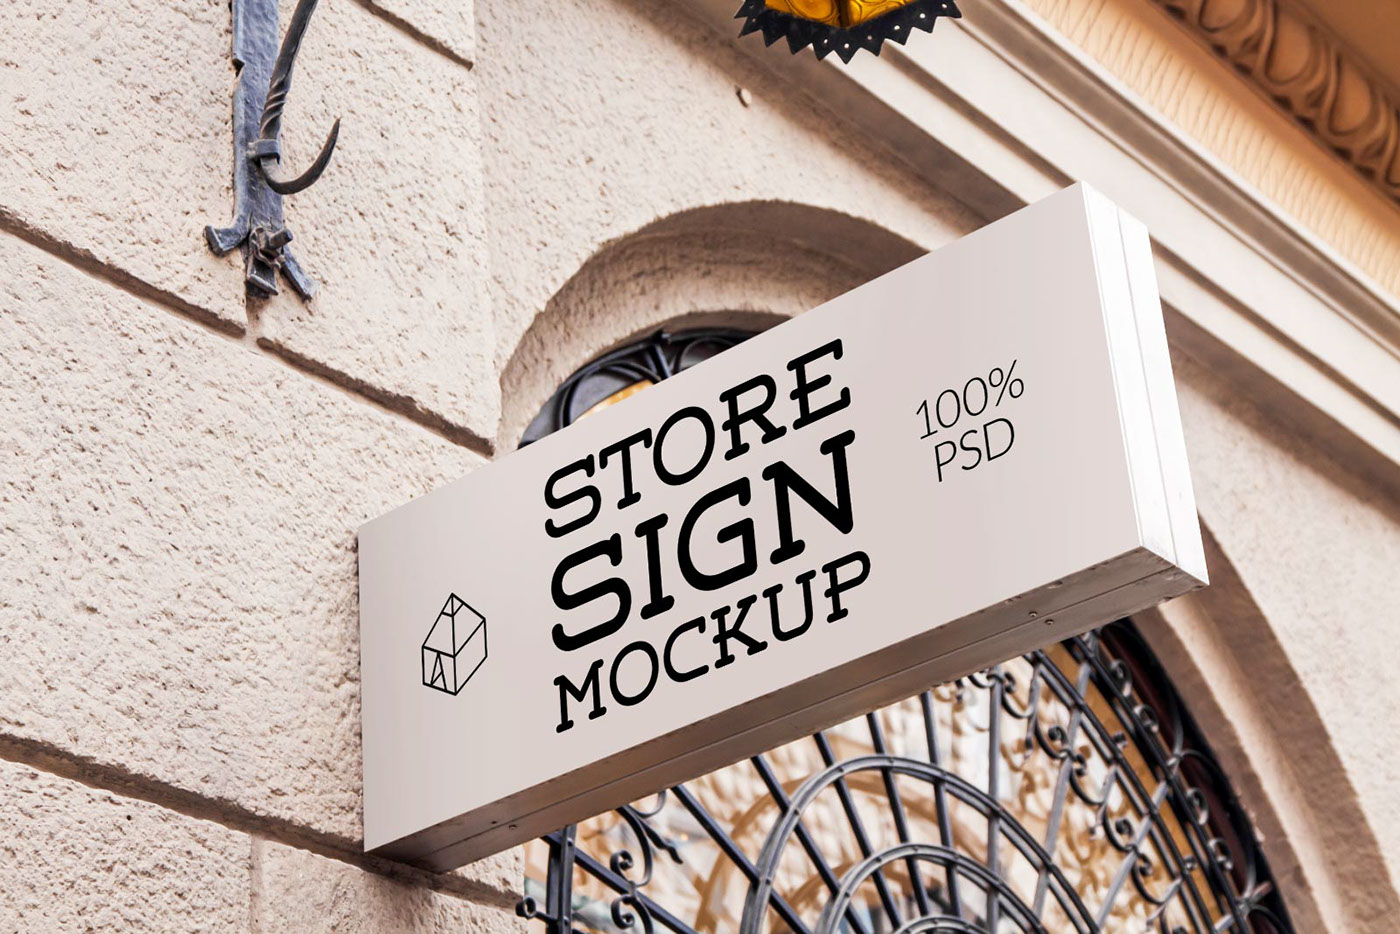 Mockup,mock-up,shop,Shopping,store,sign,Street,free,freebie